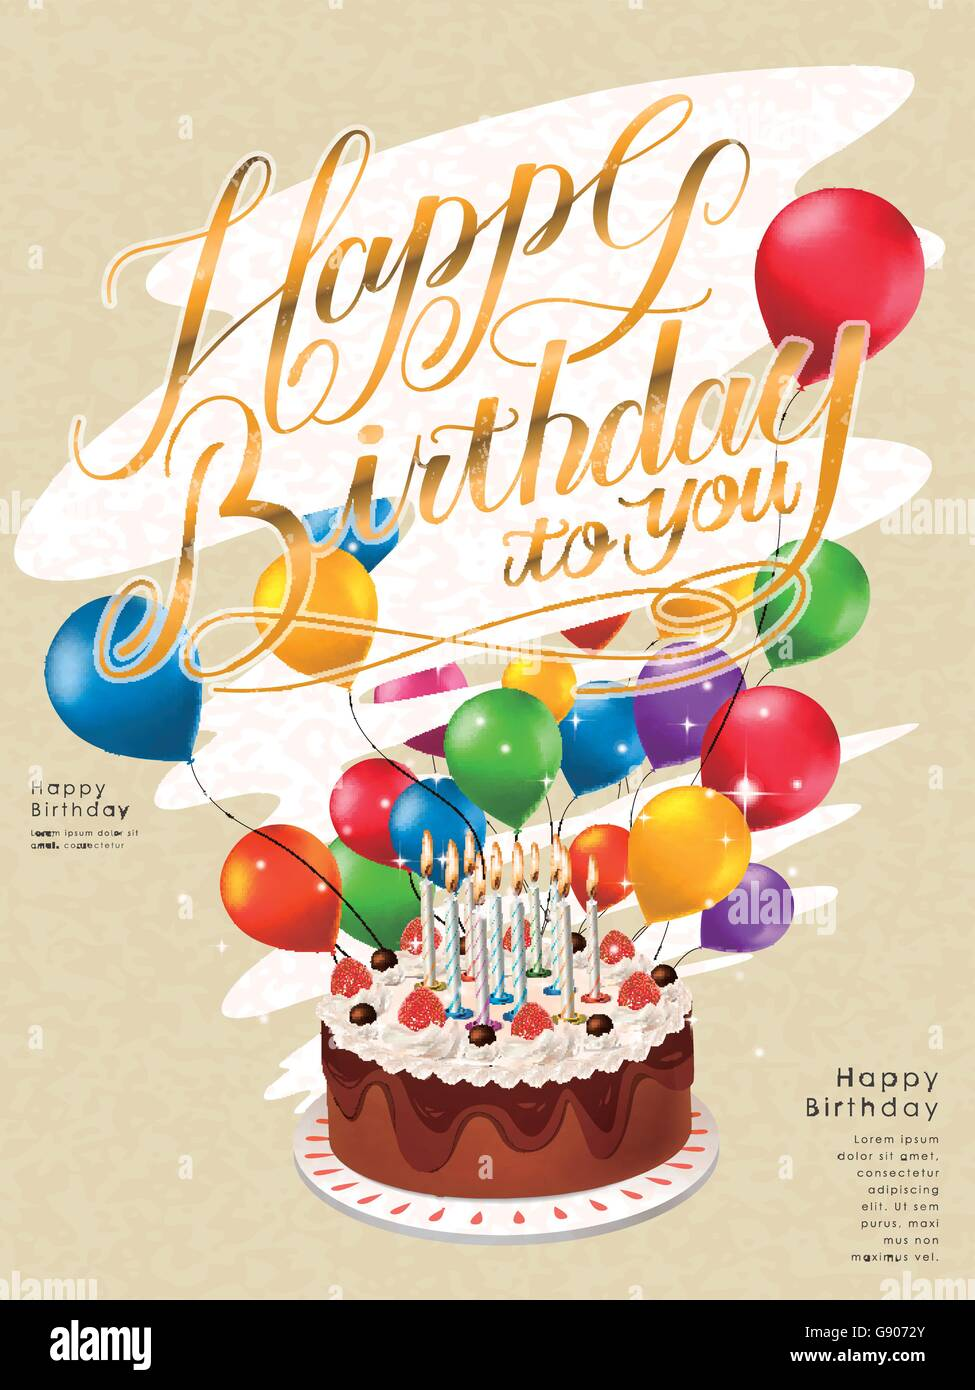 B day poster designs - Happy Birthday Poster Template Design With Lovely Cake And Balloons